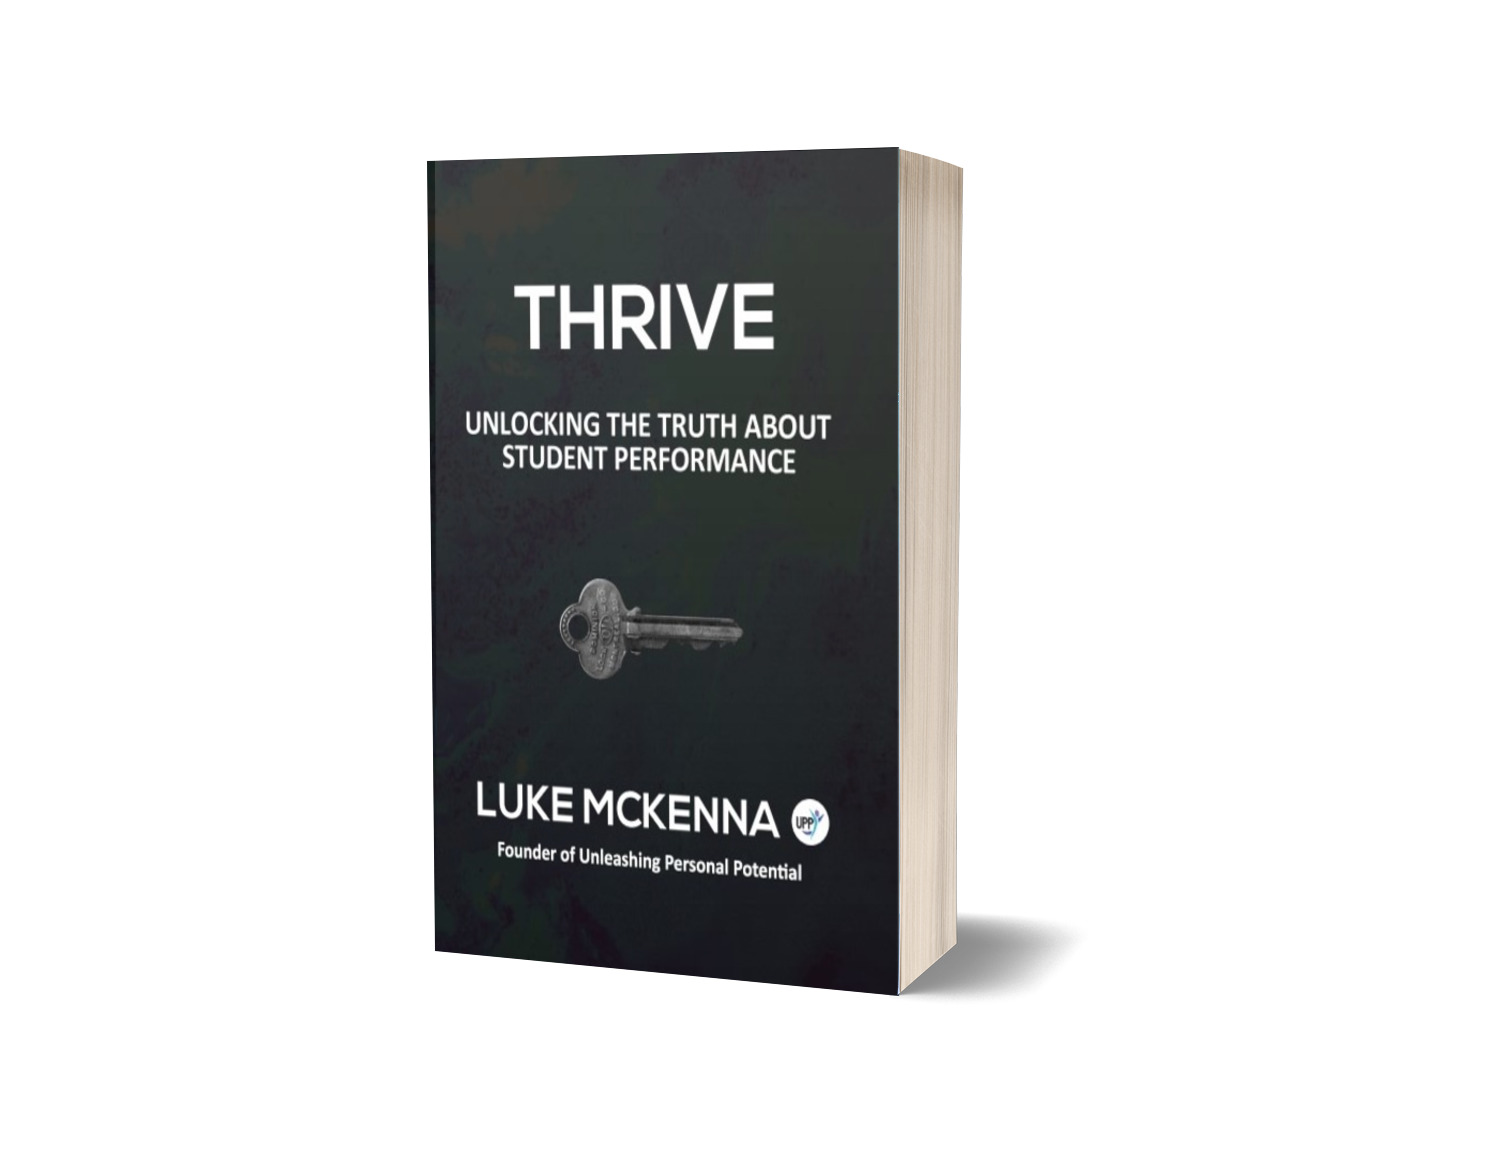 Get the Thrive Book for Your School